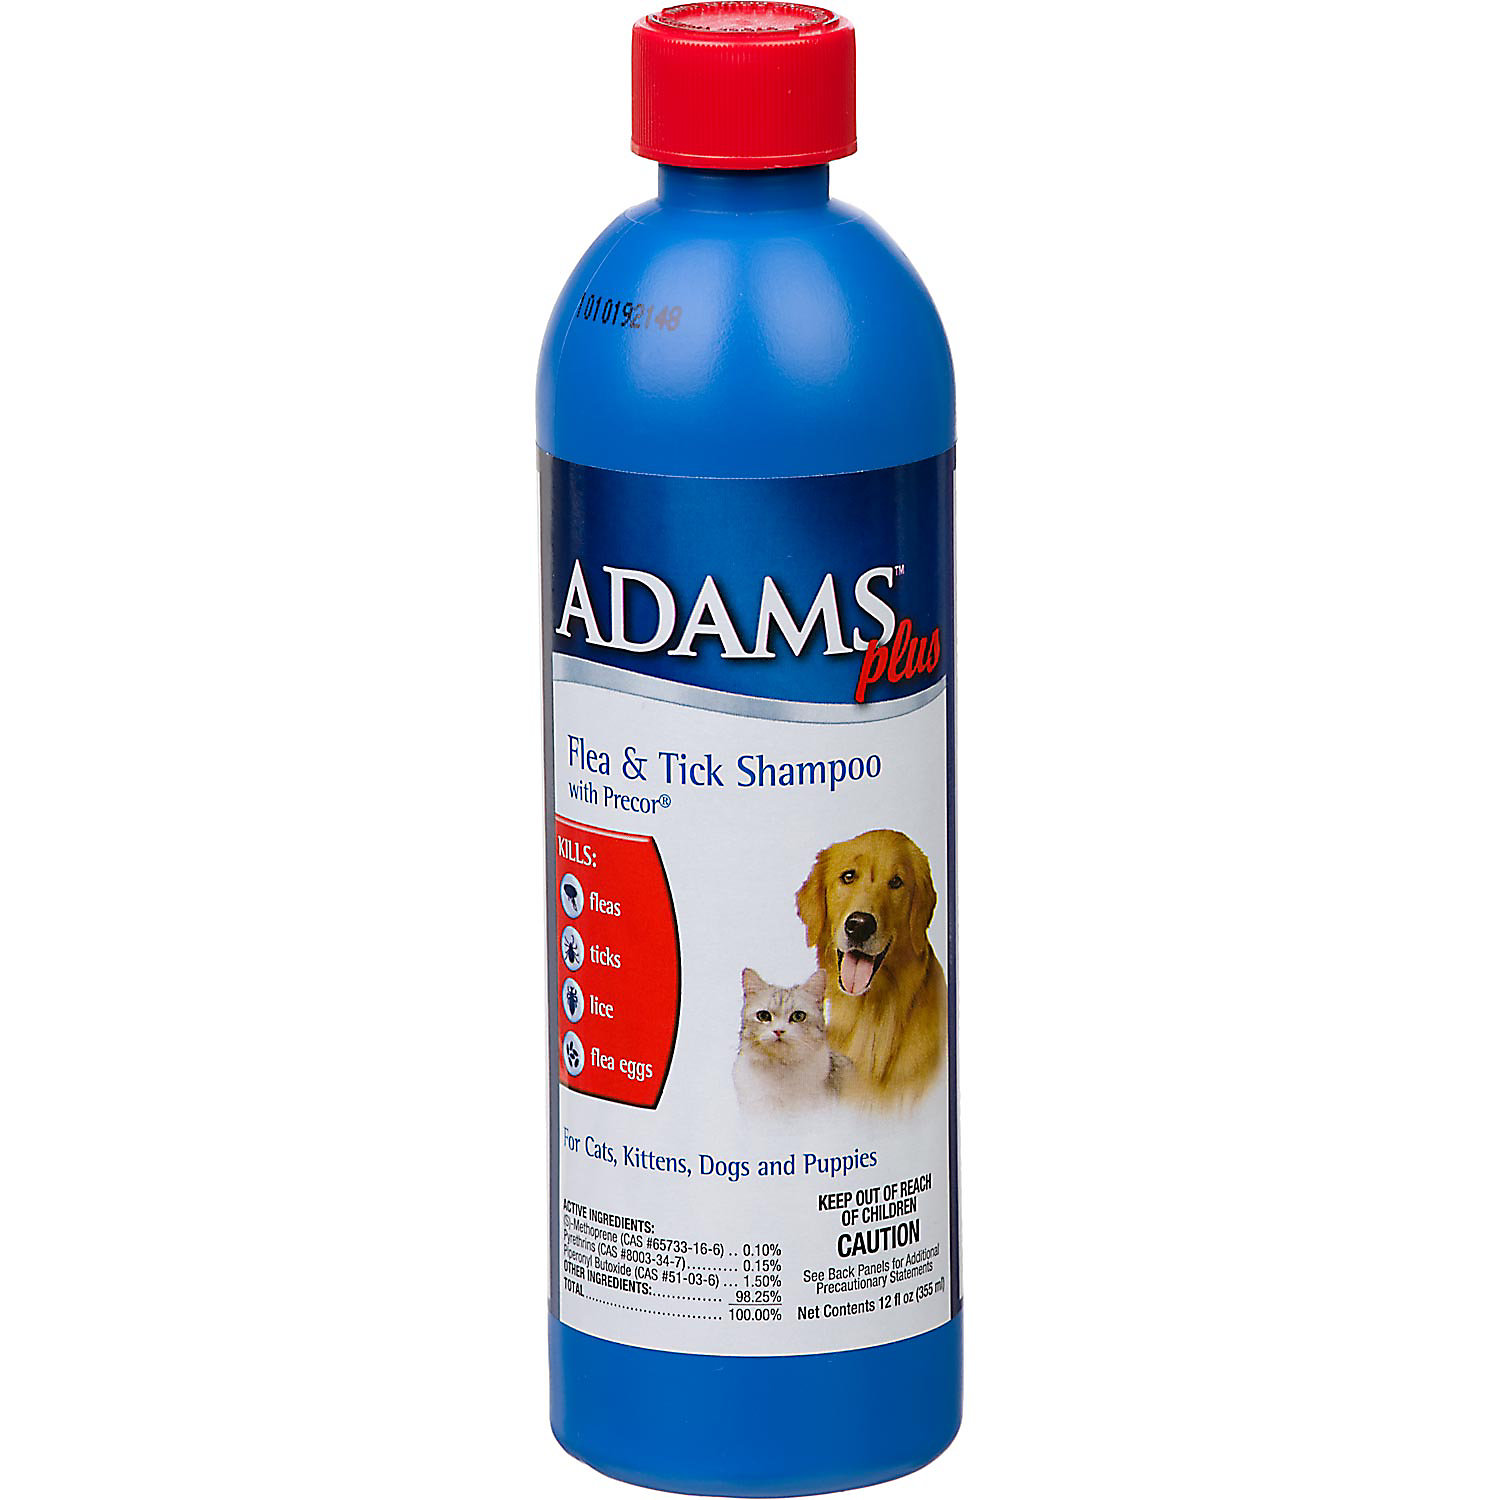 Adams Plus Flea Tick Shampoo With Precor For Dogs And Cats 12 Oz.